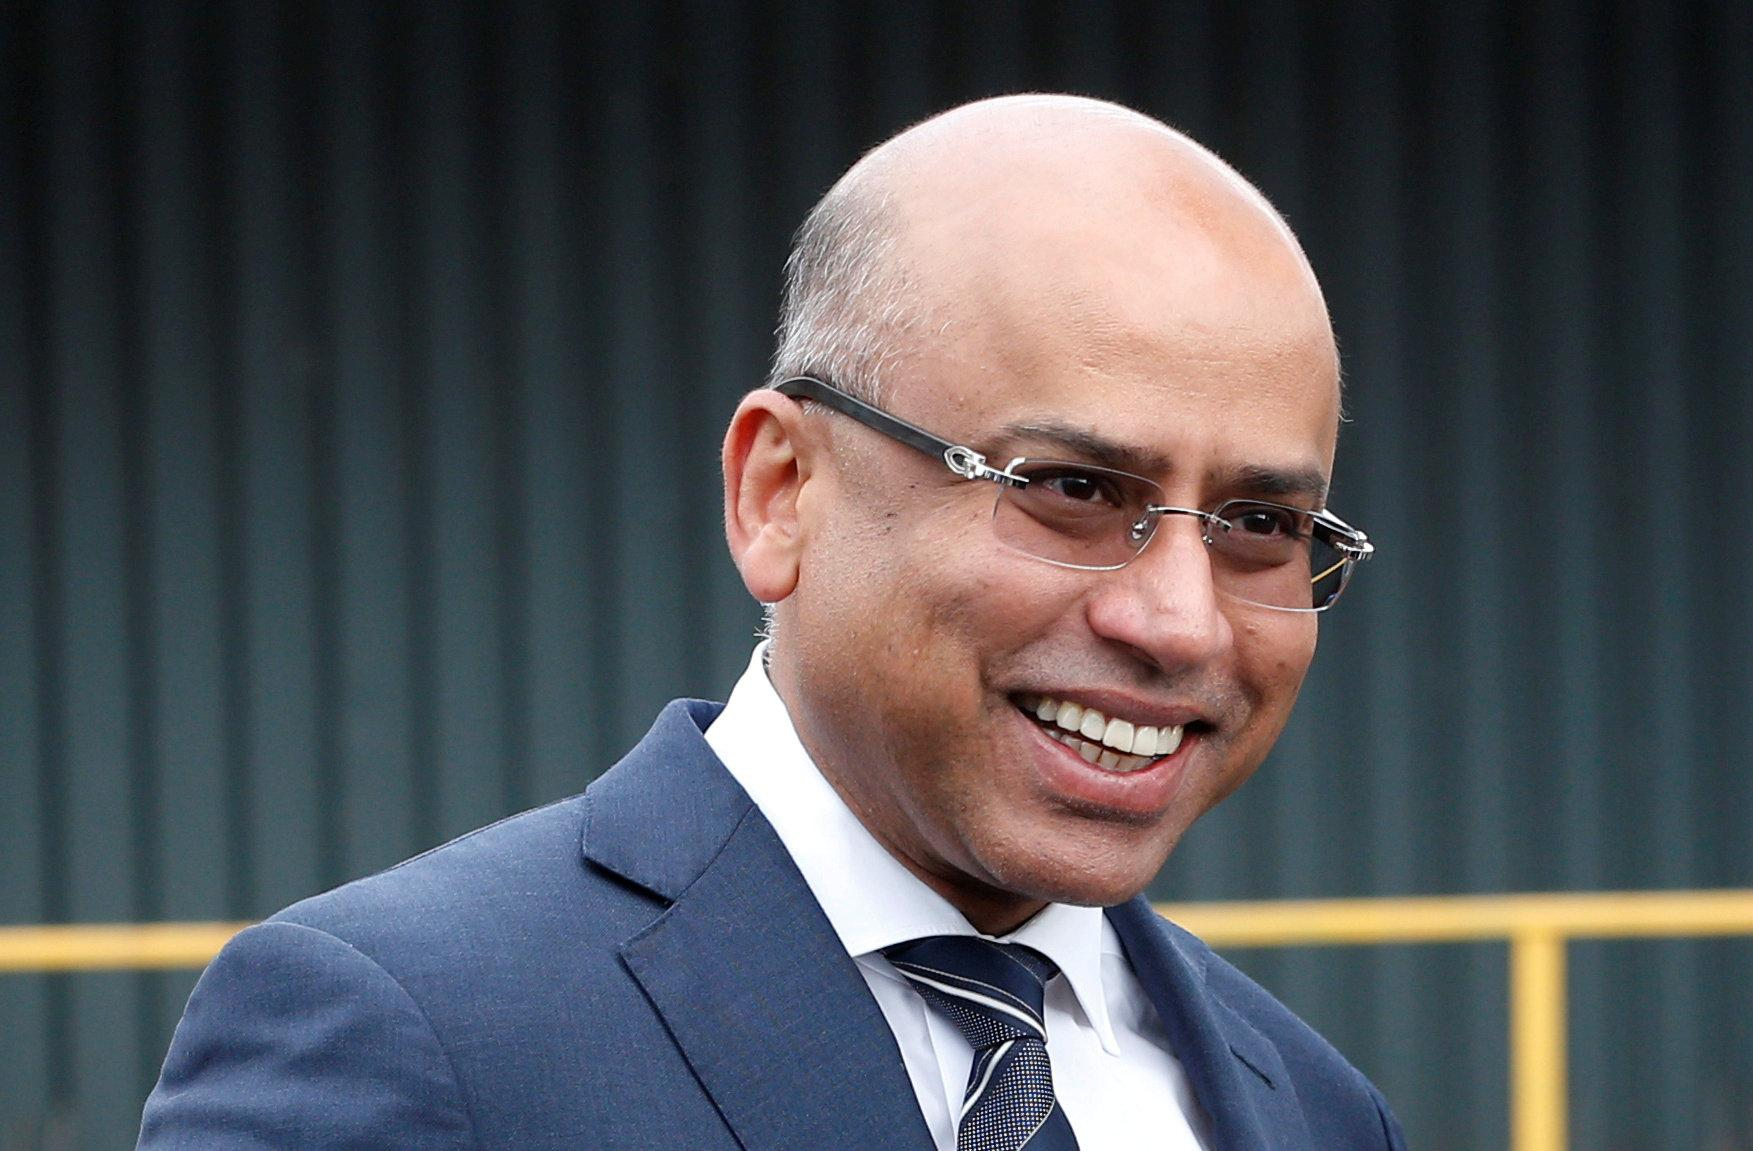 Liberty Steel's Sanjeev Gupta smiles outside their newly acquired Liberty Steel processing mill in Dalzell, Scotland, Britain April 8, 2016. Russell Cheyne/File photo